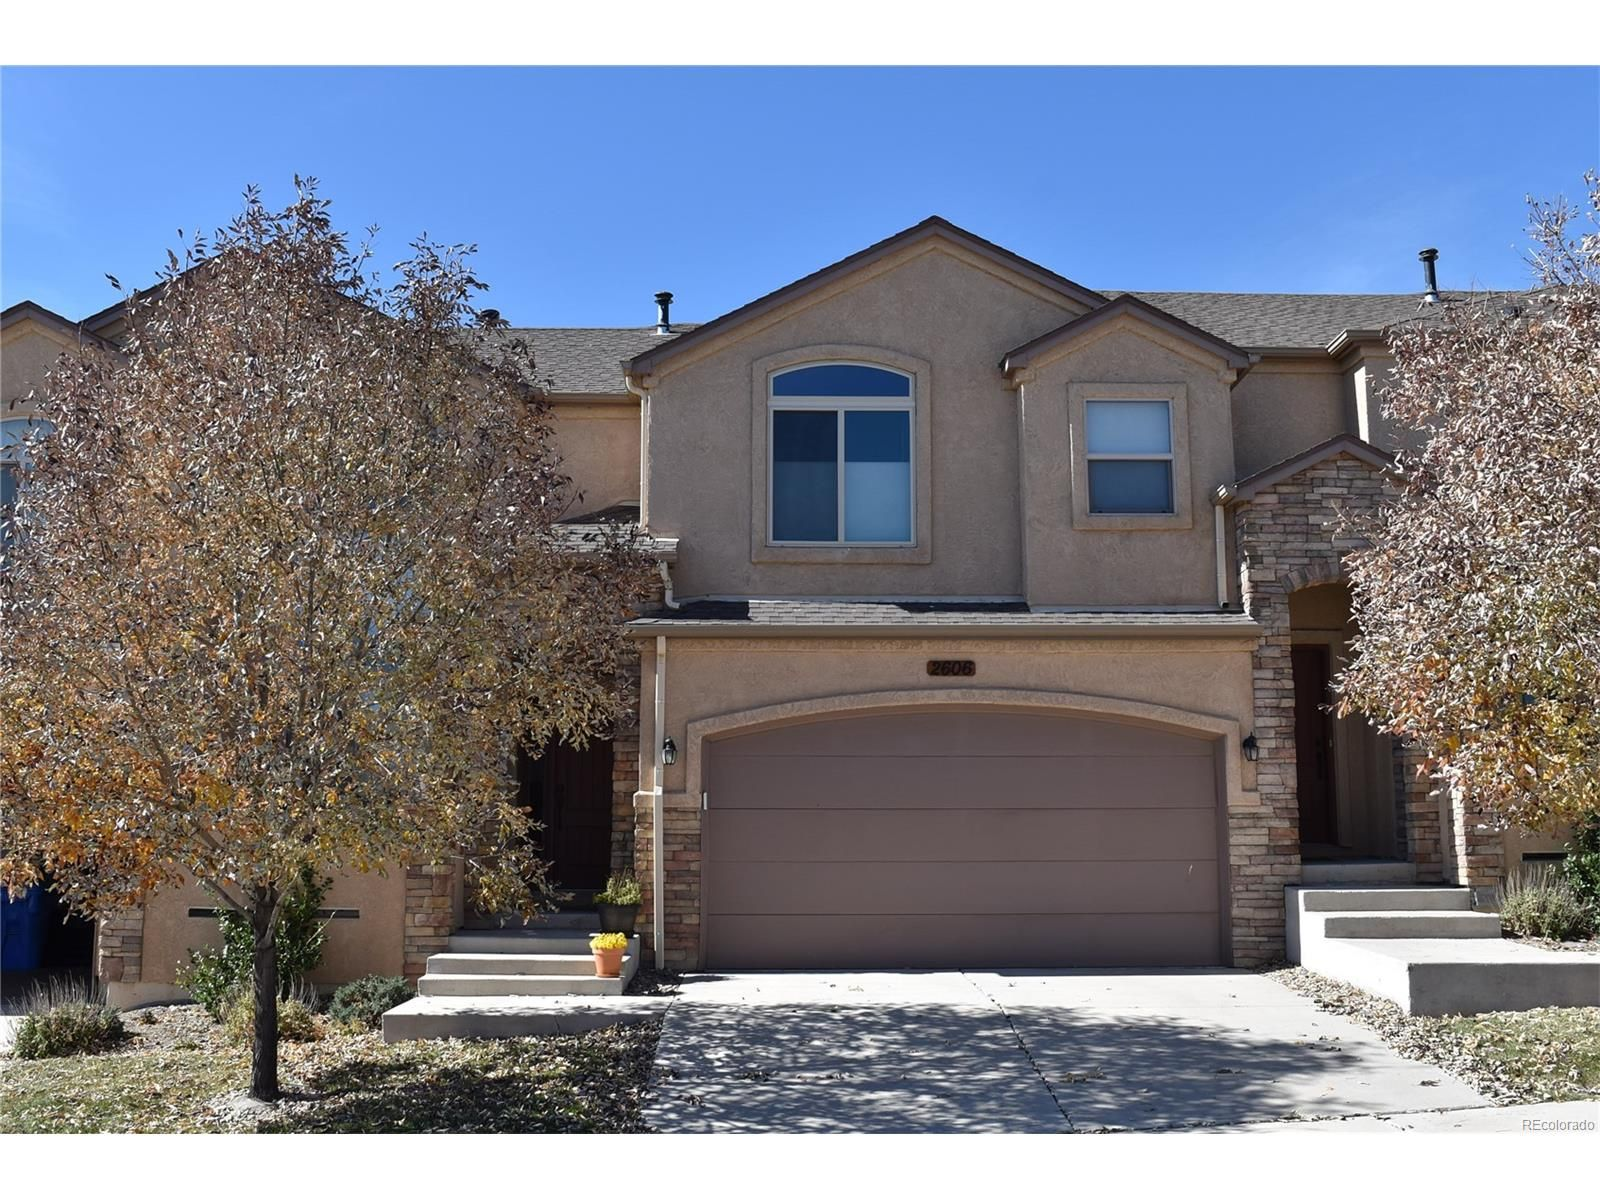 2606 indian hills grv colorado springs co 80907 recently sold 2606 indian hills grv solutioingenieria Image collections